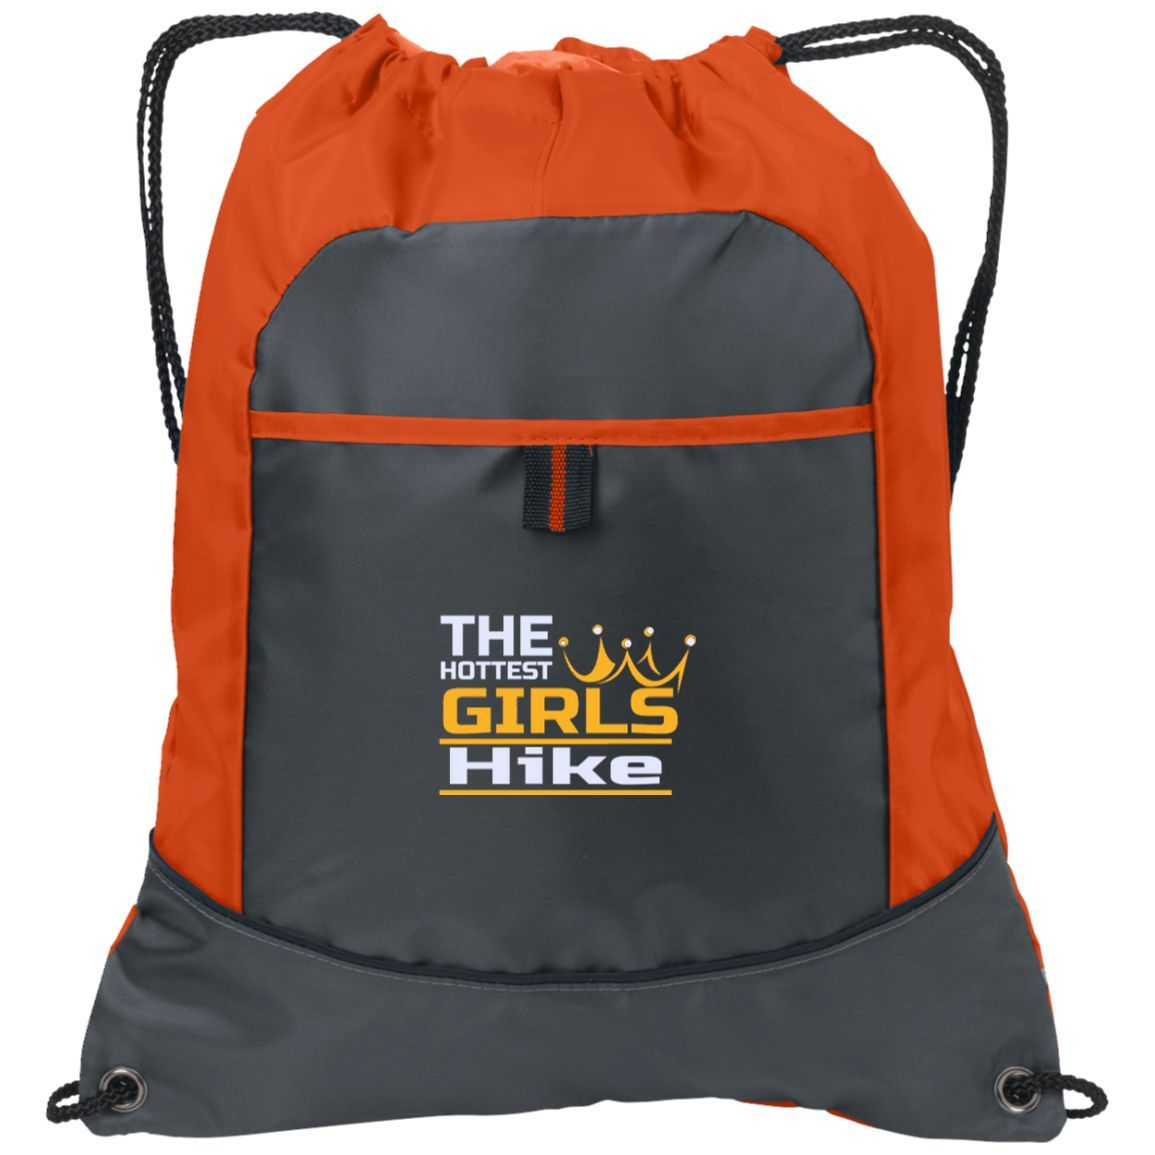 1605b79b18ab The Hottest Girls HIKE Cinch Bag w Custom Embroidered Design Two-Tone  Pocket Drawcord Close Pack Backpack Polyester School Hiking Camping